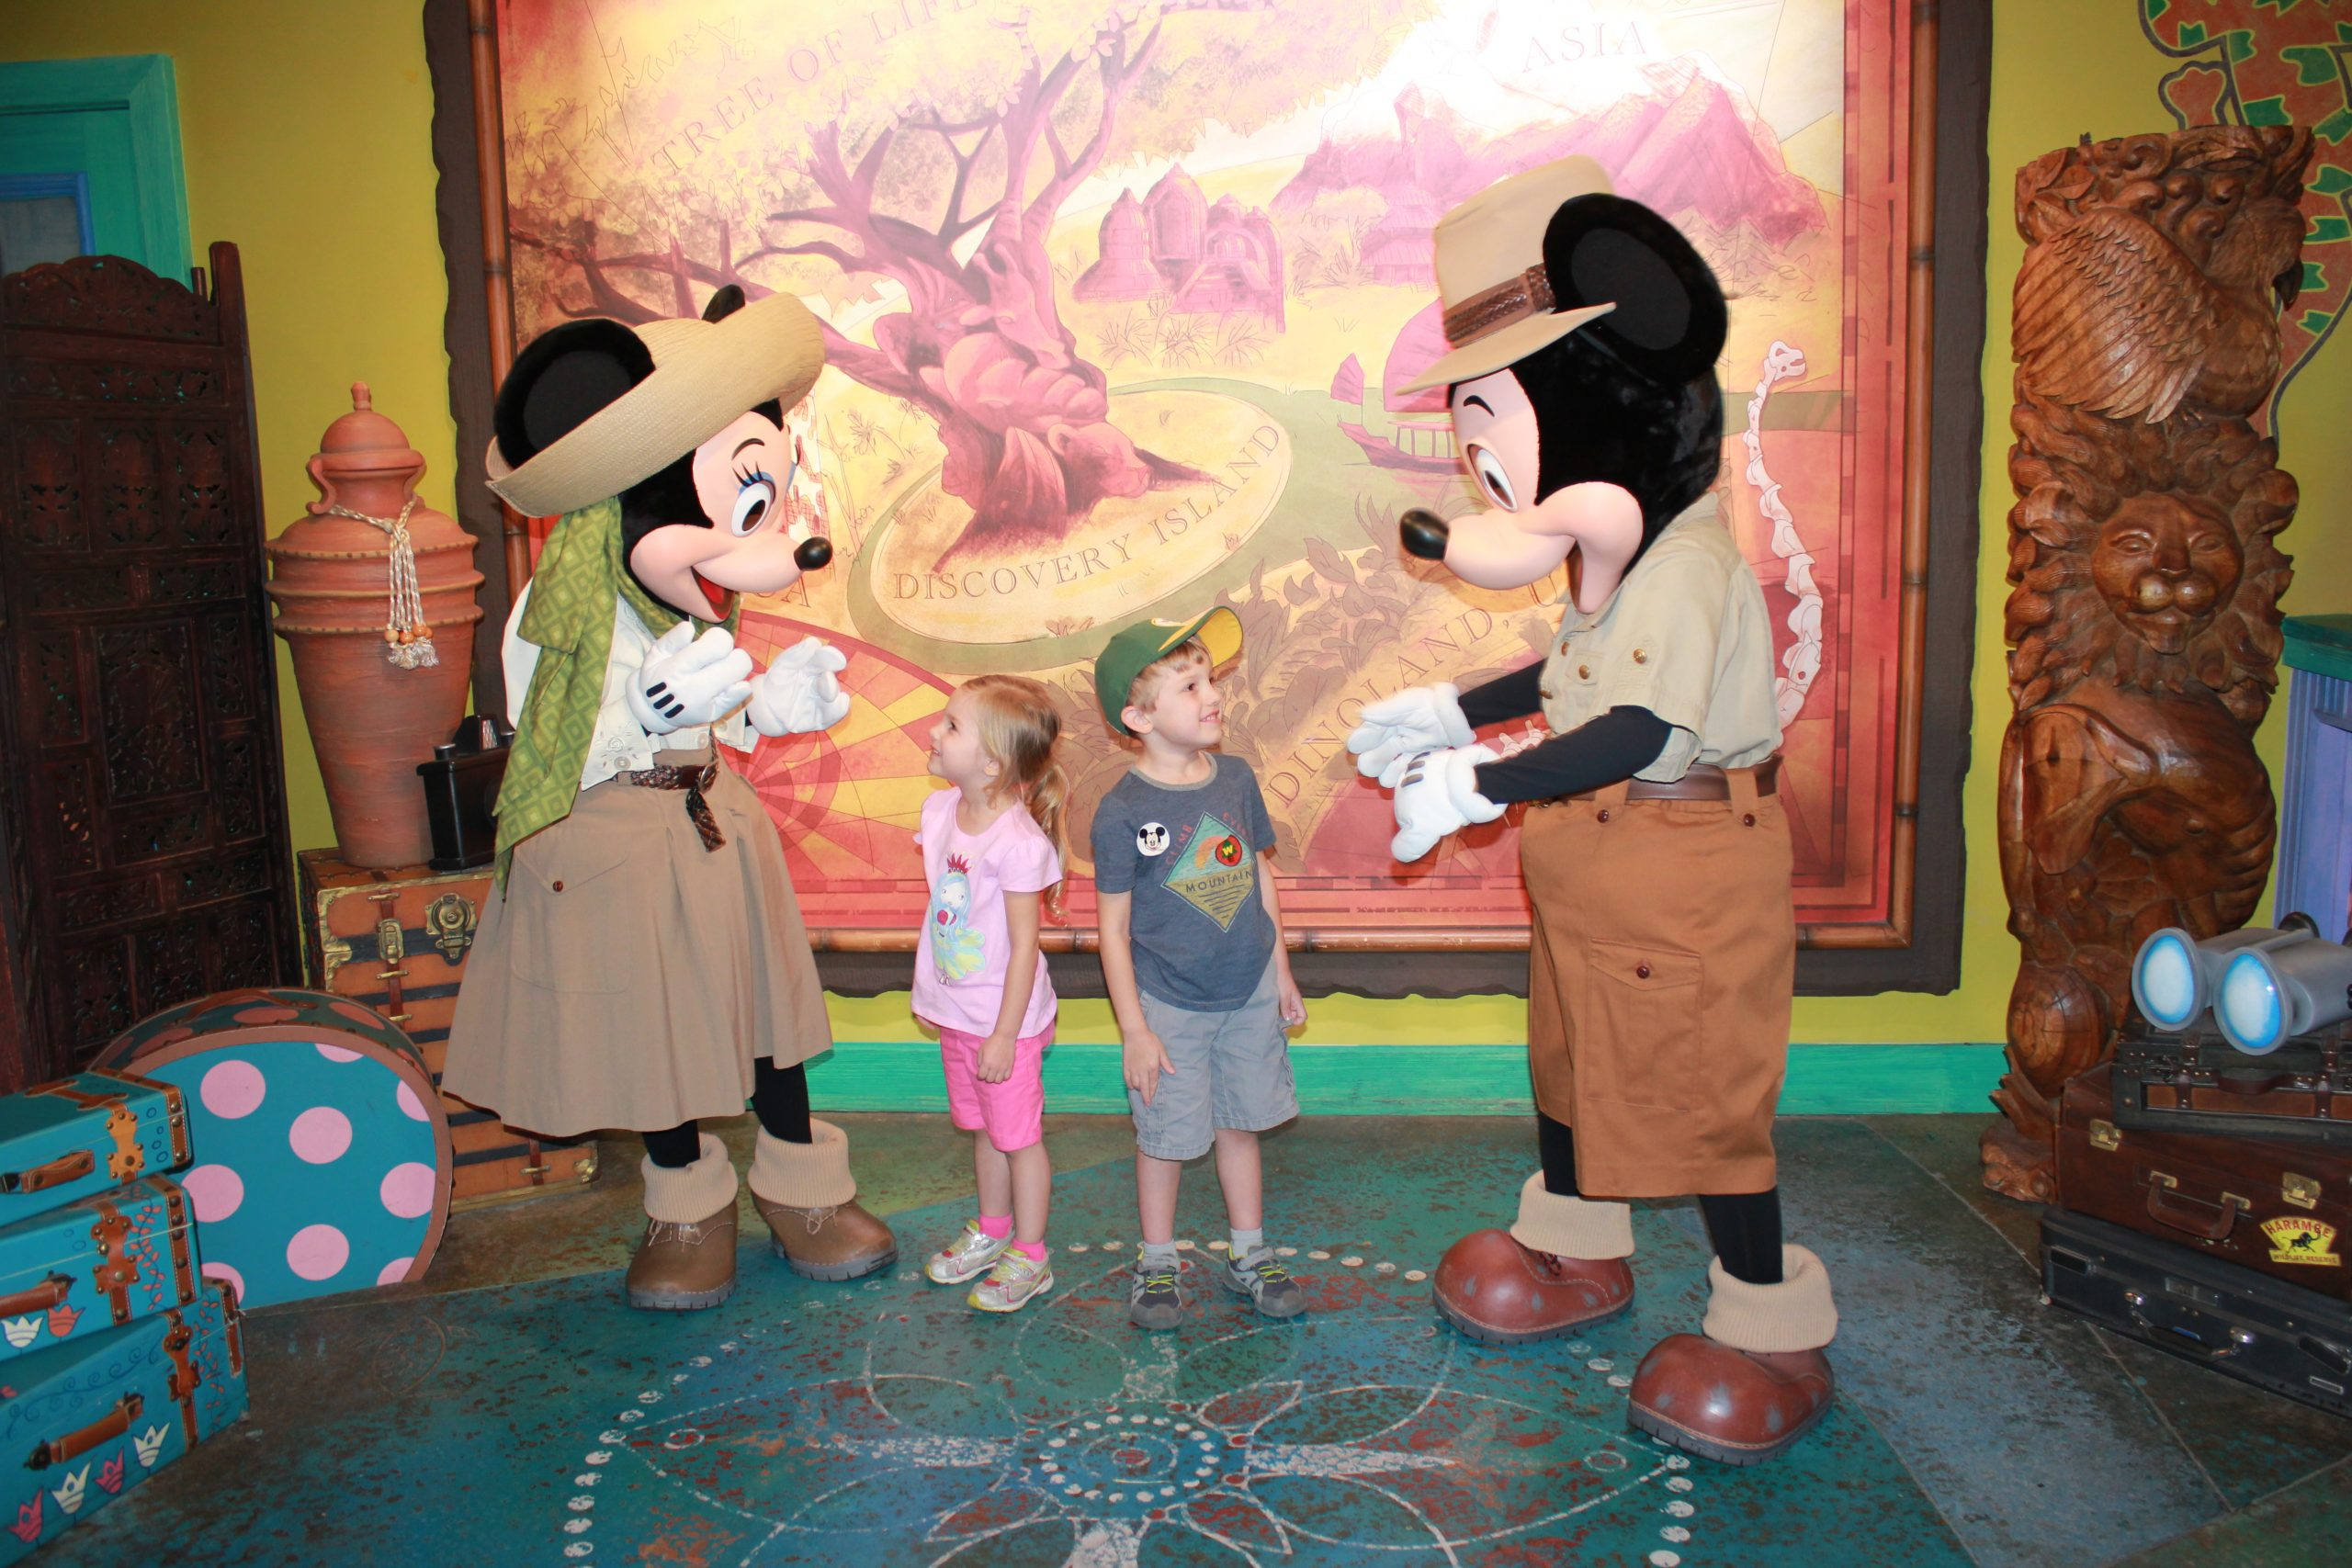 Cernys Journeys - Cora & Jamen with Mickey and Minnie at Disney World